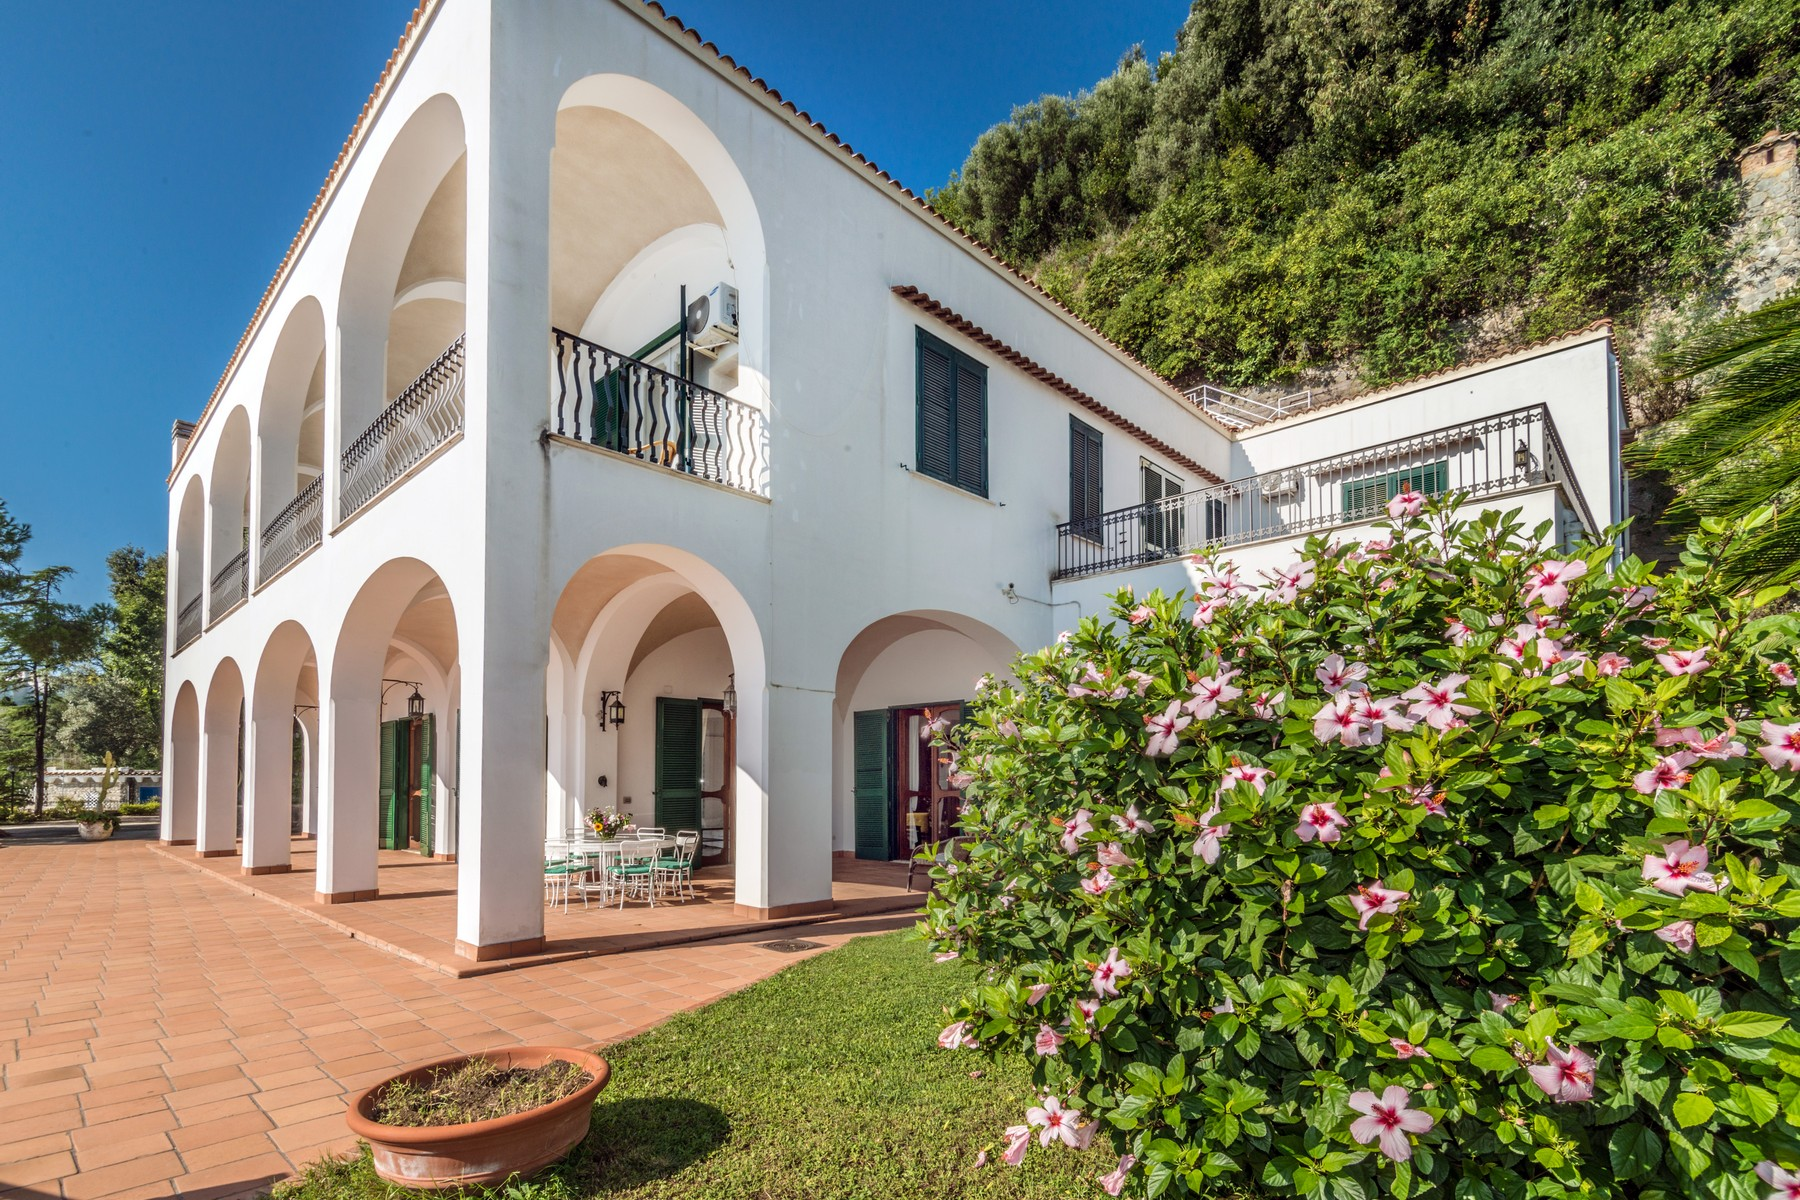 Additional photo for property listing at Unique seafront villa on the Amalfi Coast Vietri sul Mare Vietri Sul Mare, Salerno 84019 Italy